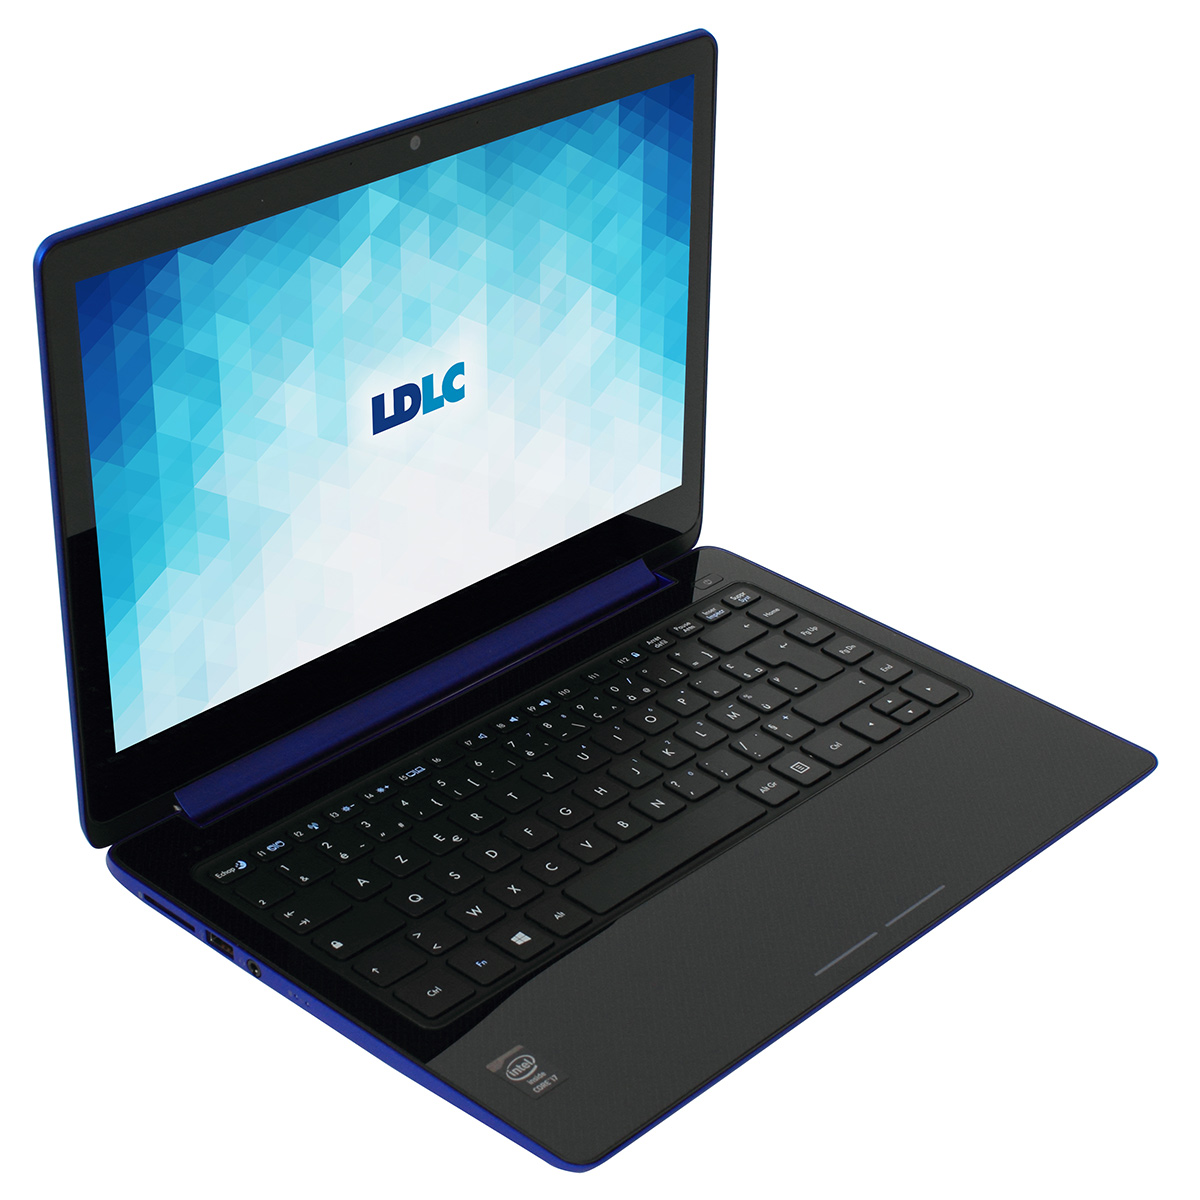 "PC portable LDLC Iris FB2-I7-8-S2 UltraSlim Intel Core i7-4500U 8 Go SSD 256 Go 13.3"" LED QHD Tactile Wi-Fi N/Bluetooth 4.0 Webcam (sans OS)"